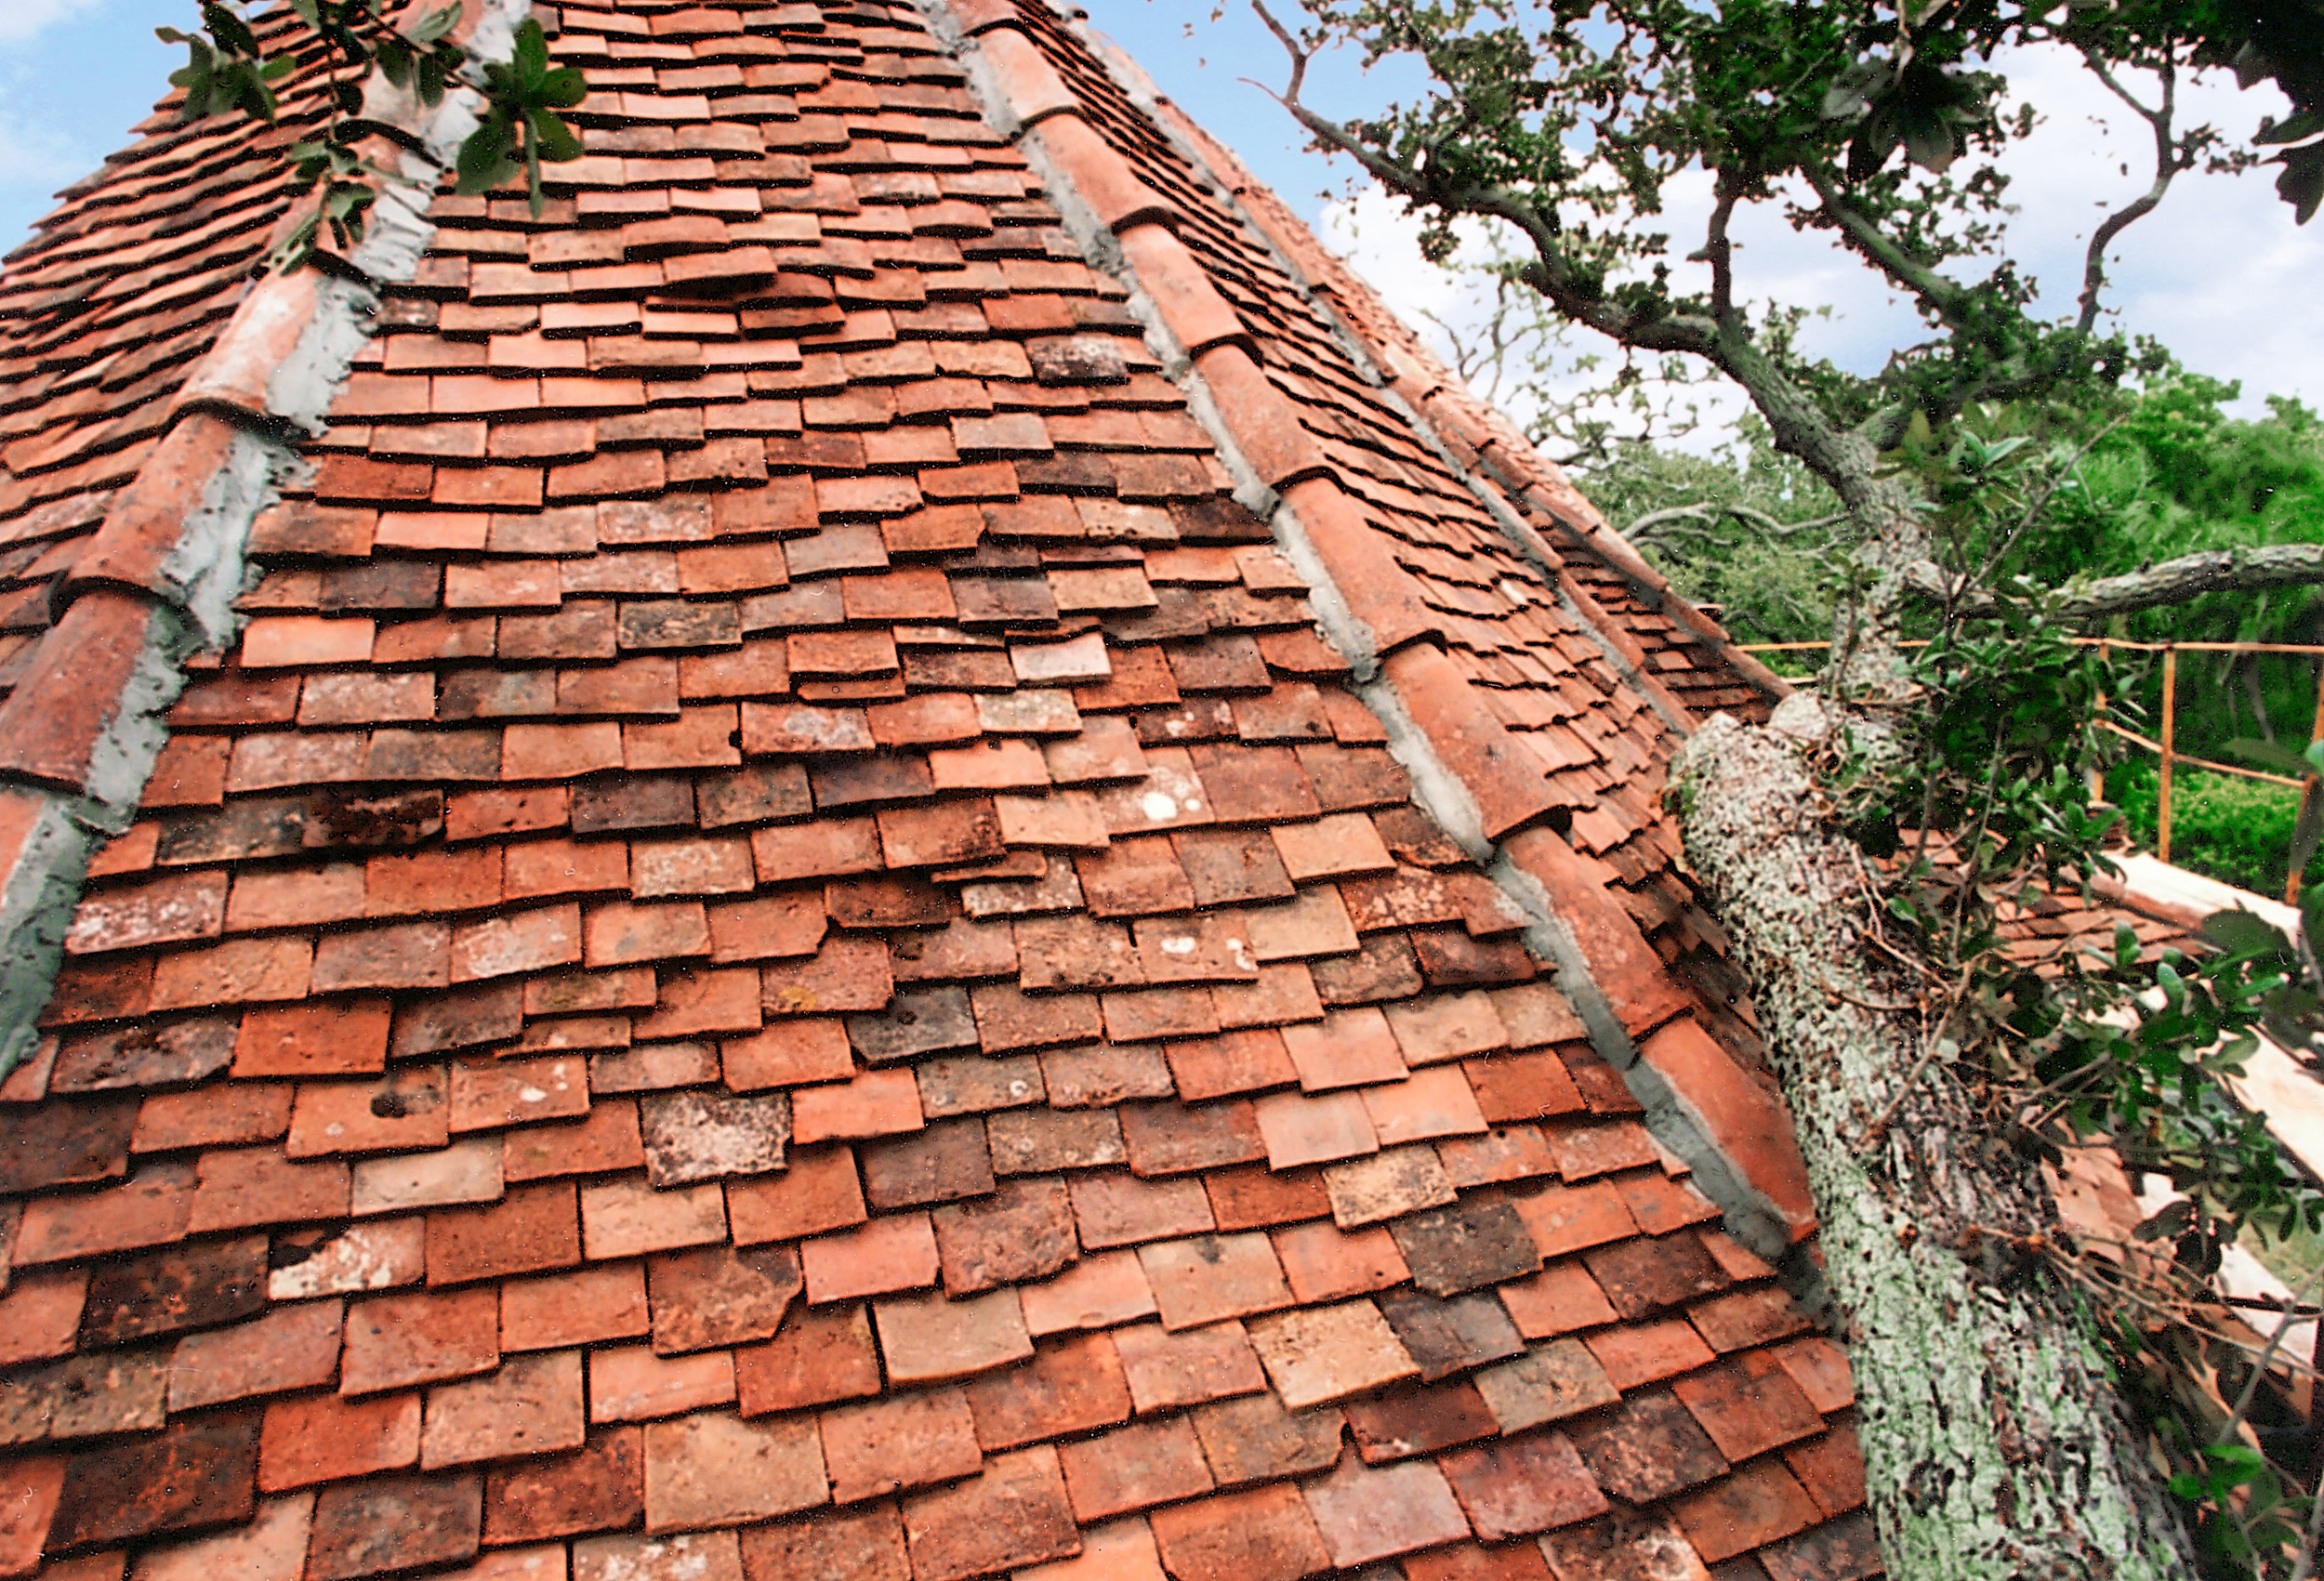 layered tile roof